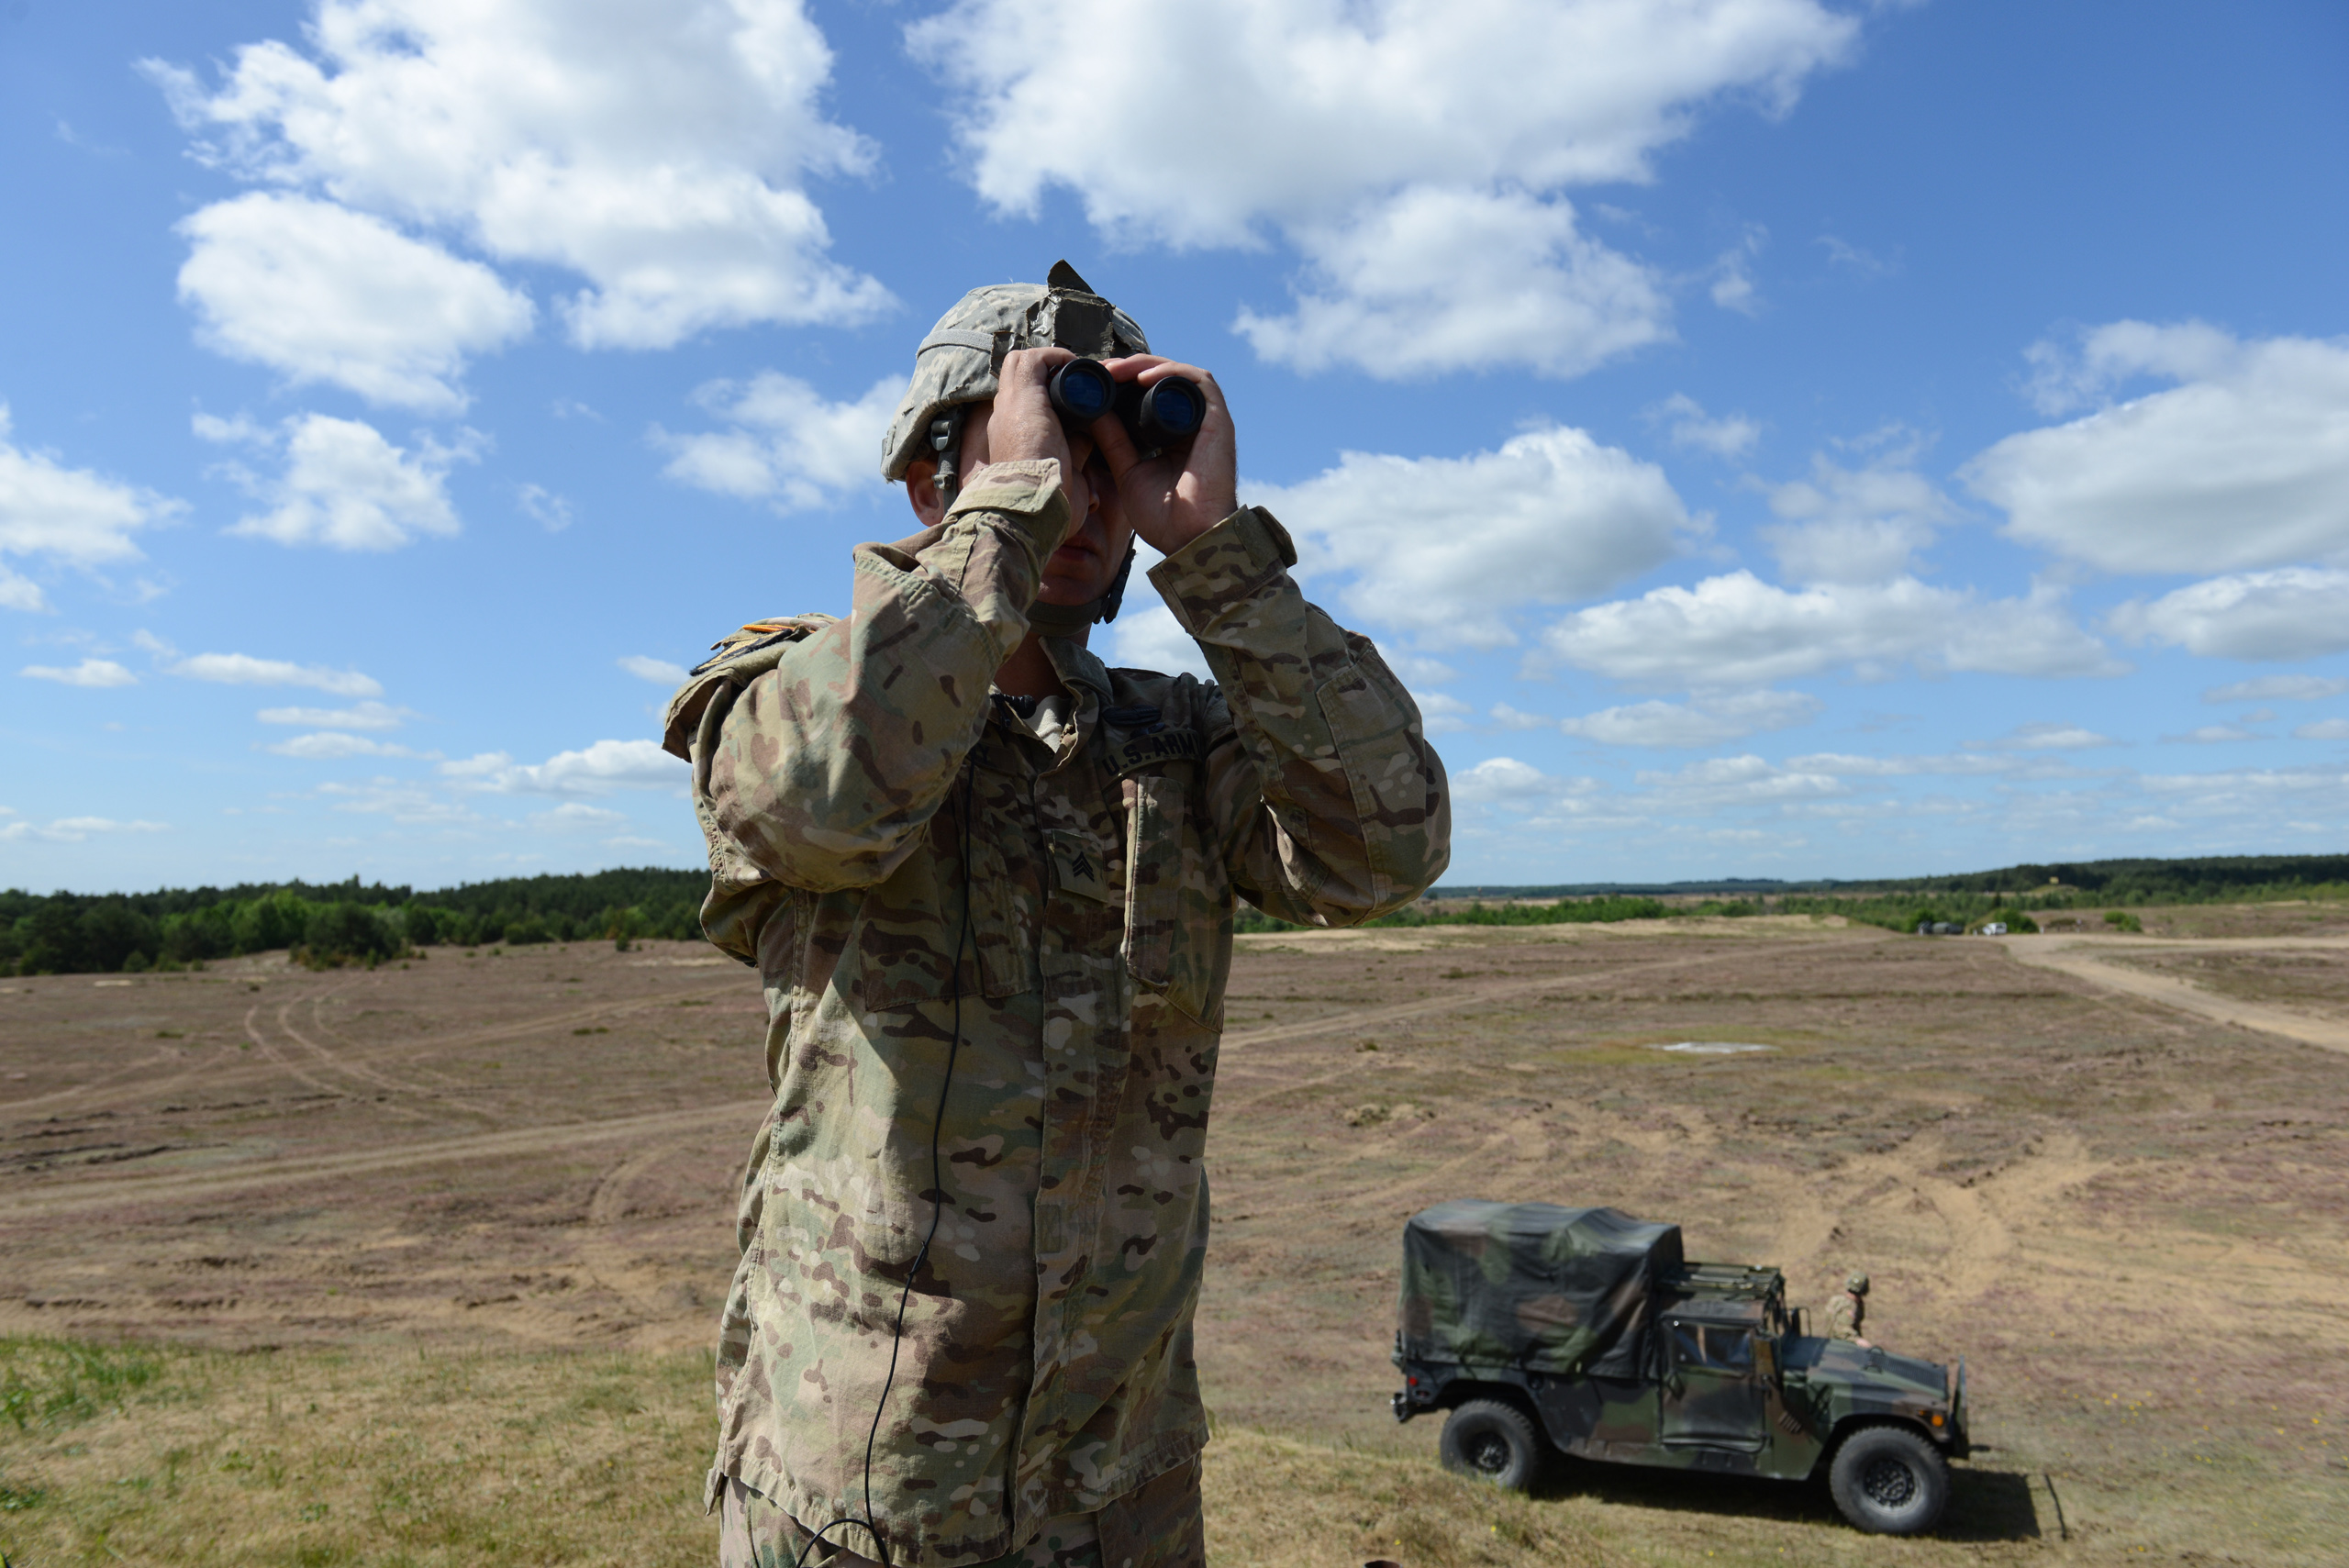 Sergeant Stephen Murphy with the Fourth of the 319th Airborne Field Artillery Regiment of the 173rd Infantry Brigade Combat Team monitors an airdrop from a C-17 aircraft that took off from Nuremberg, Germany before it drops members of his unit at the Drawsko Pomorskie Training Area in Poland on June 15, 2015.